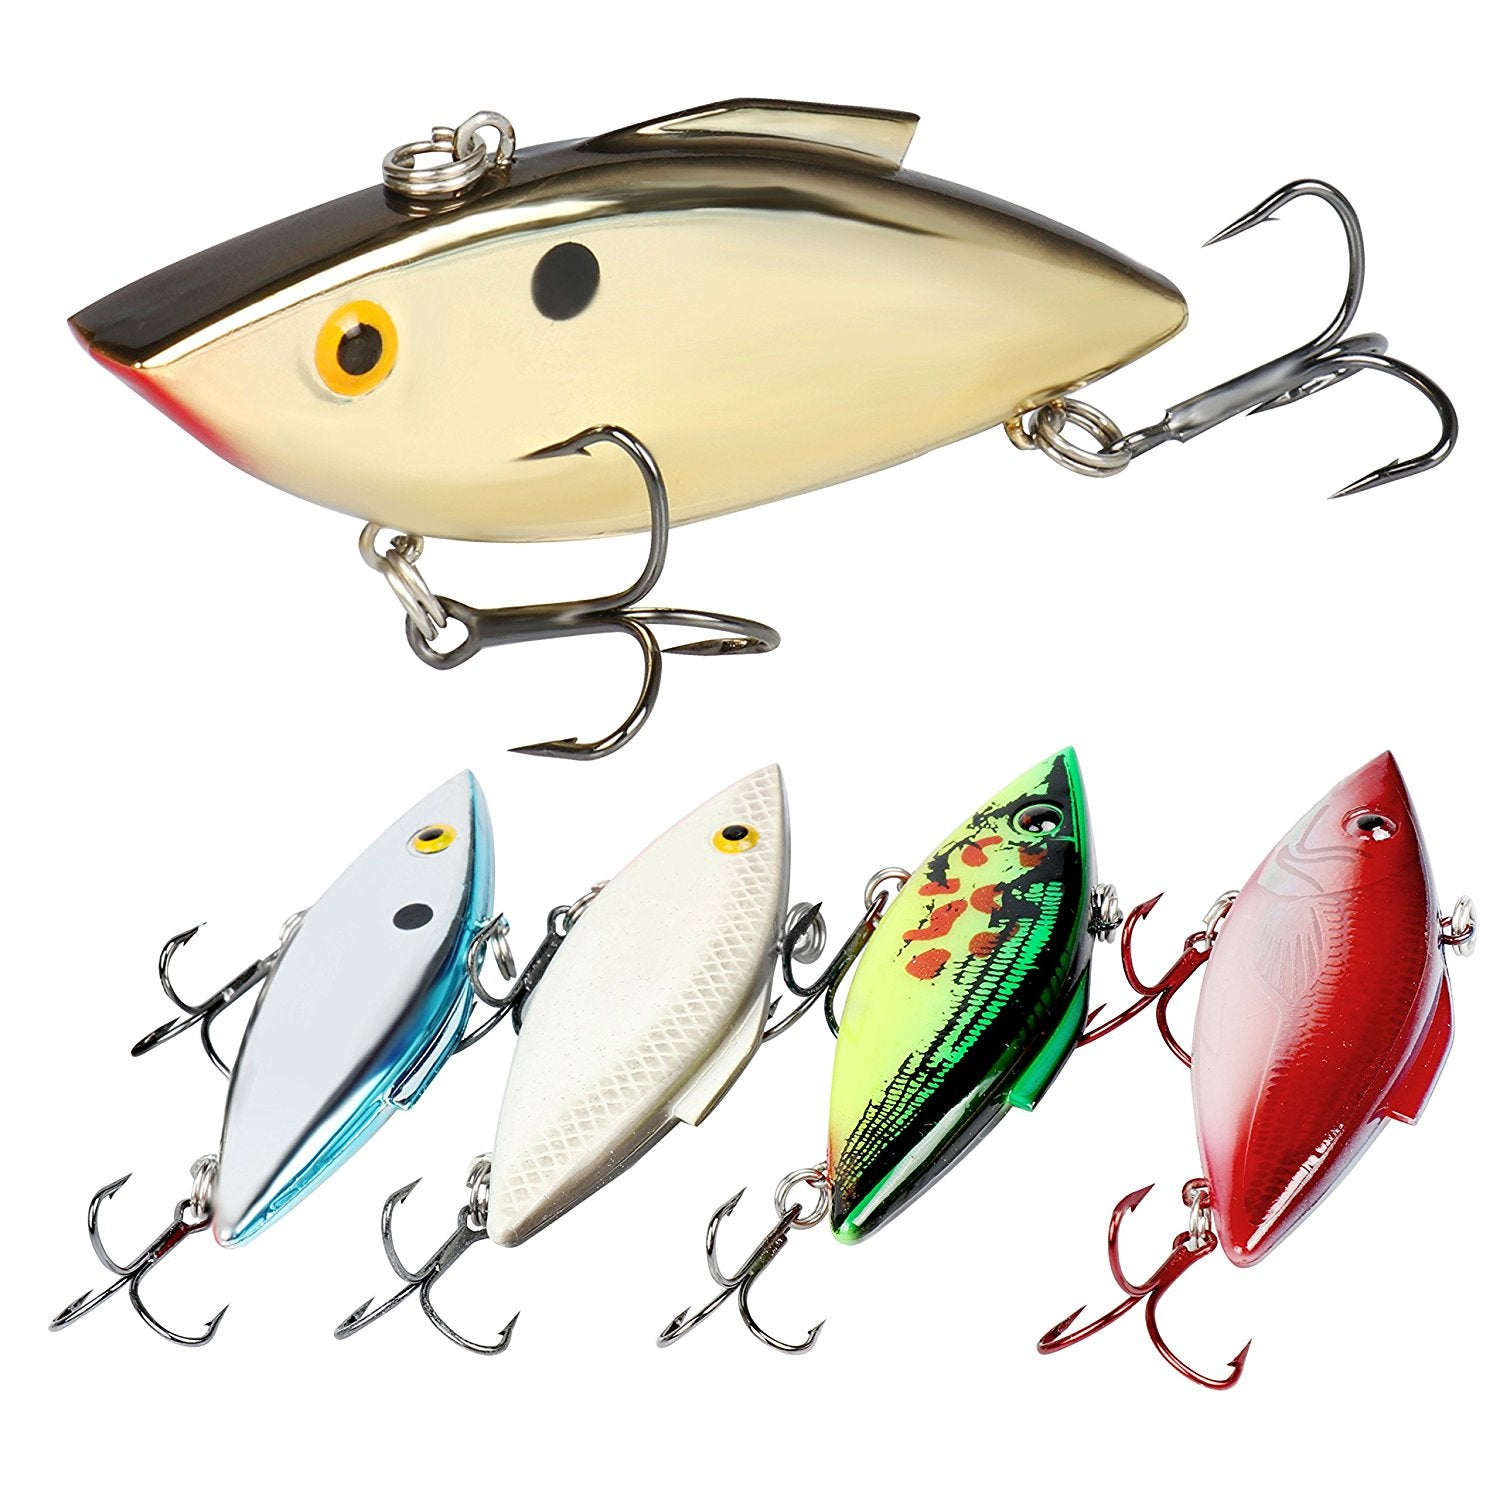 L1F3 HOT Rattles Wobbler Crank Bait Fishing Lures Hooks Tackle C1D6 Crankbait 7